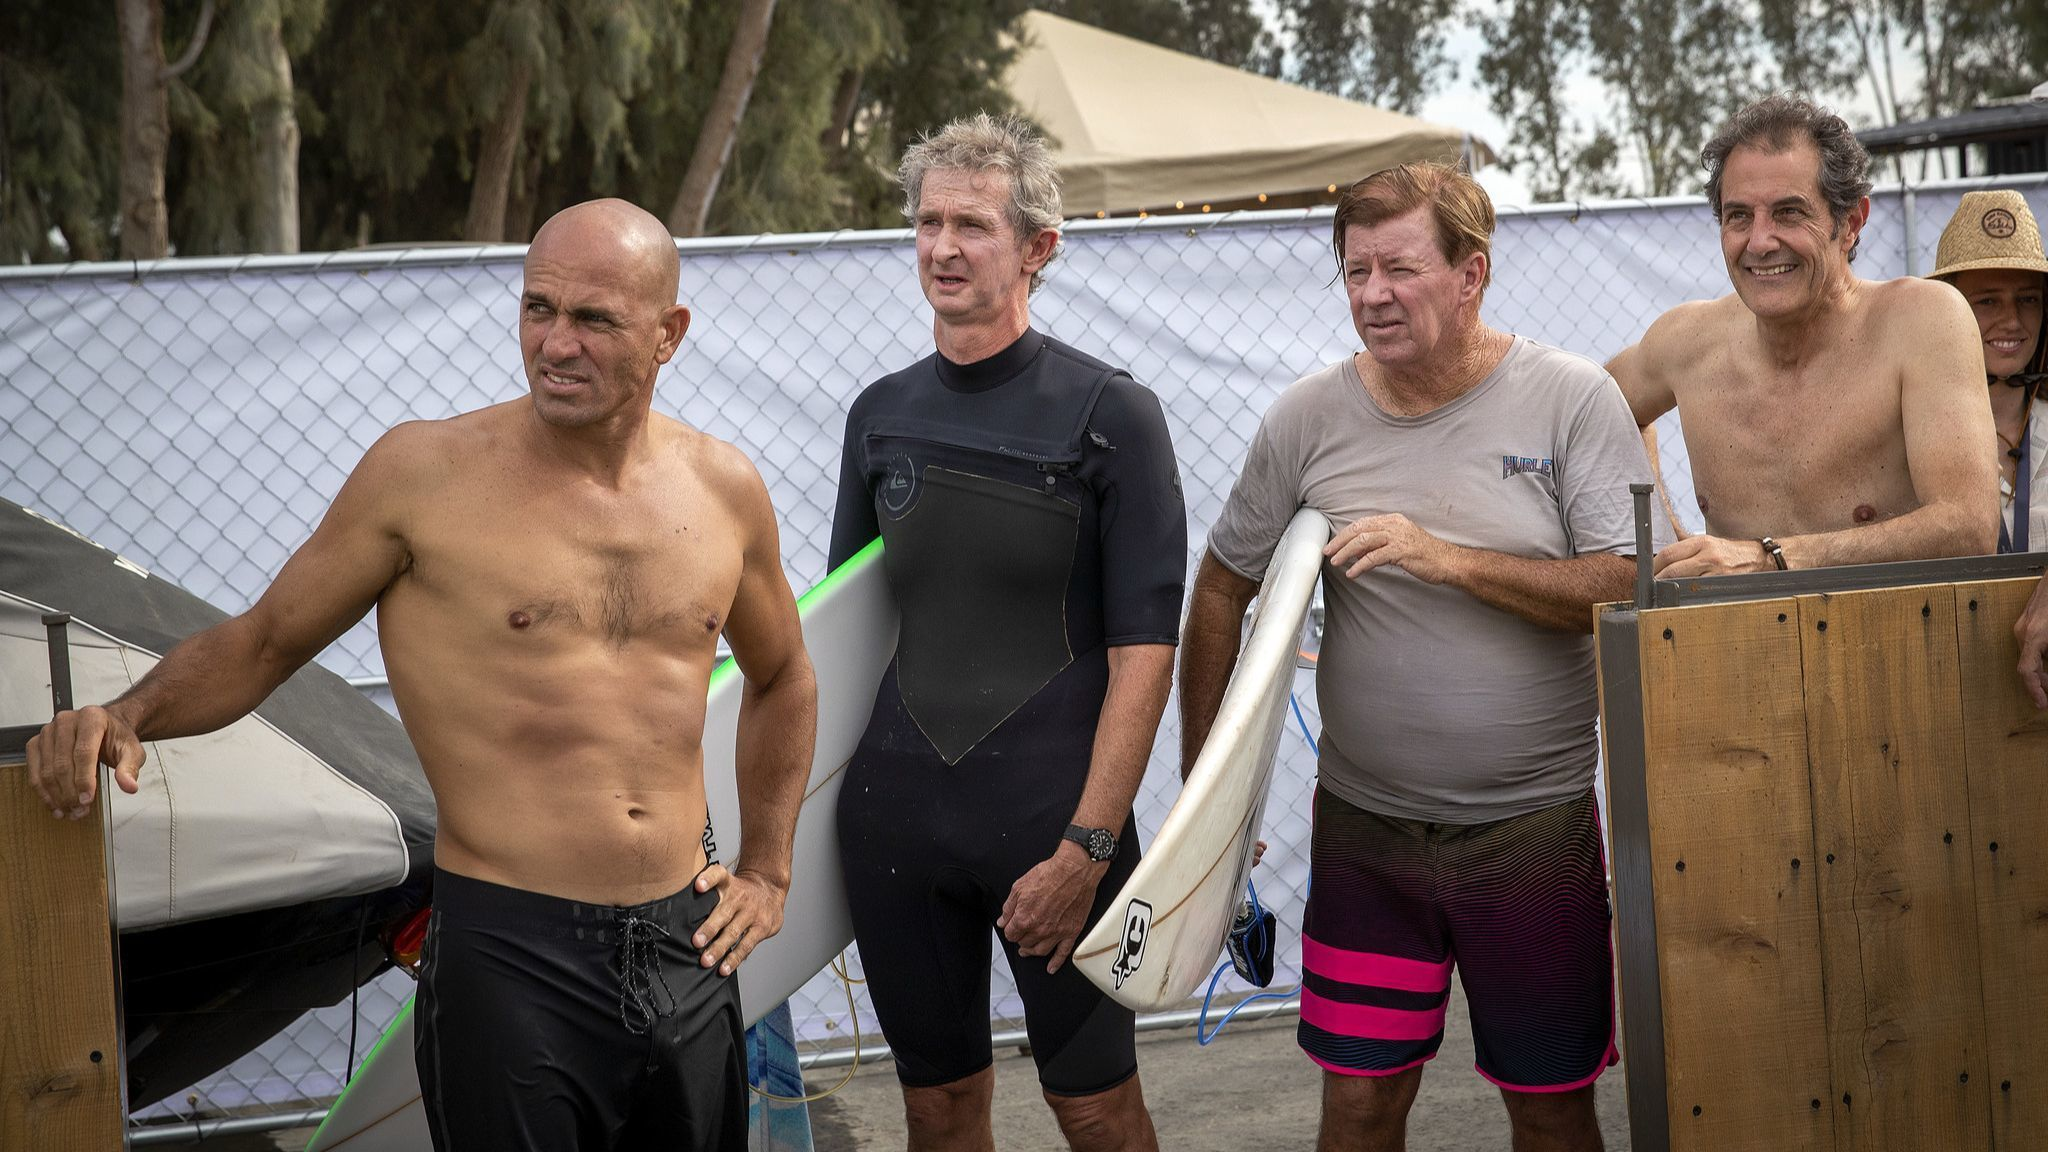 World's best compete at surf ranch designed by Kelly Slater